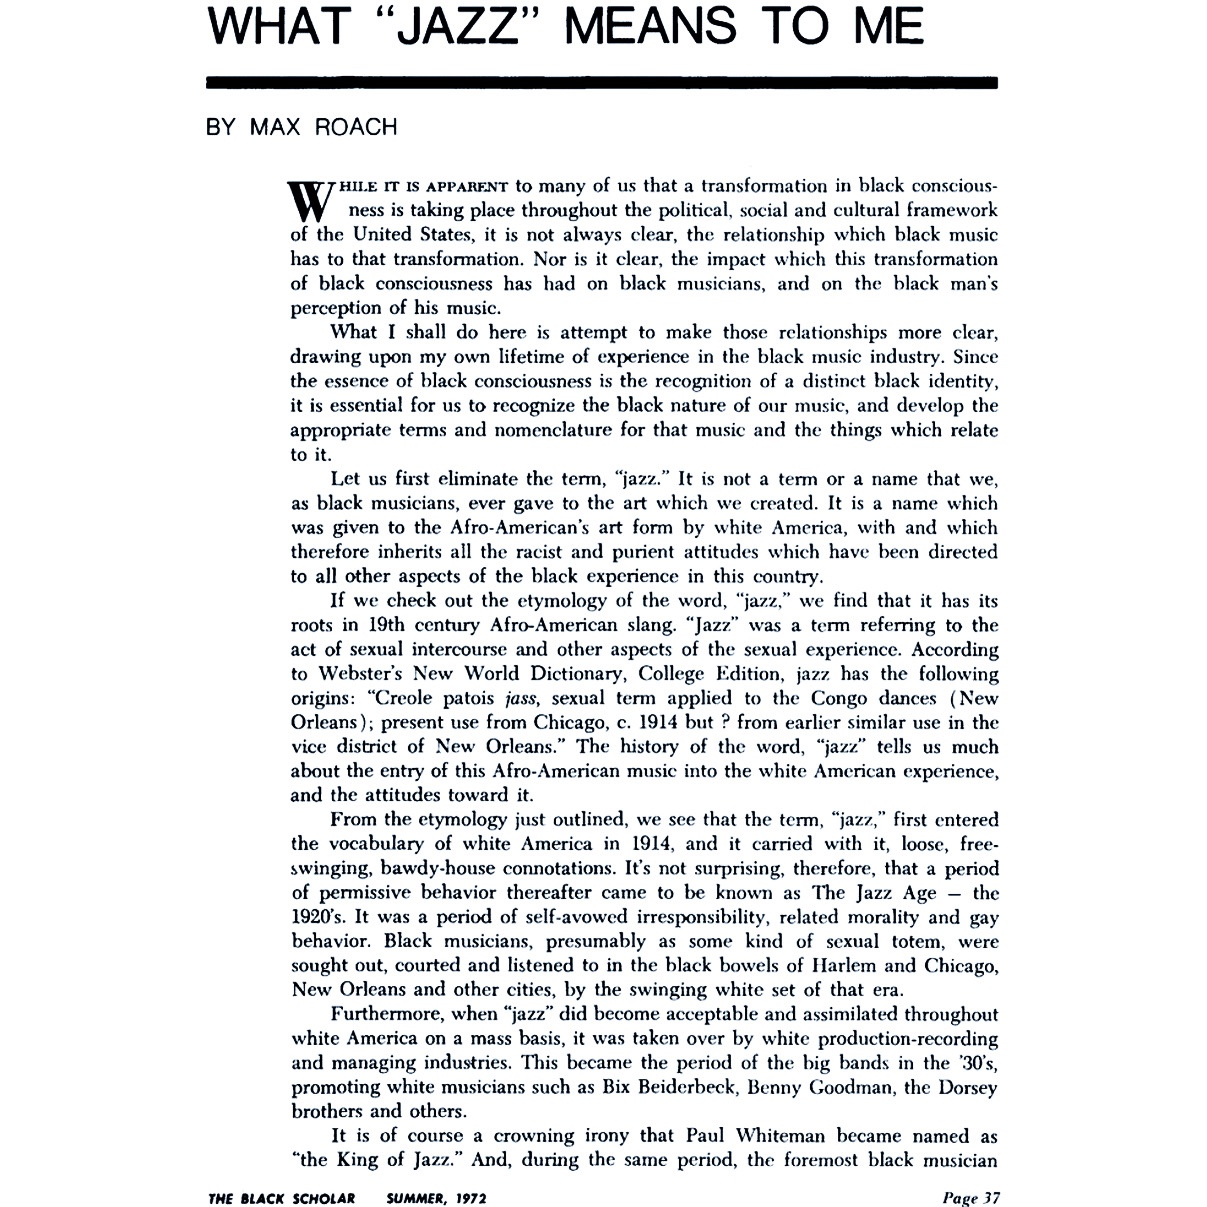 "-What ""Jazz"" means to me- by Max Roach (excerpt)"